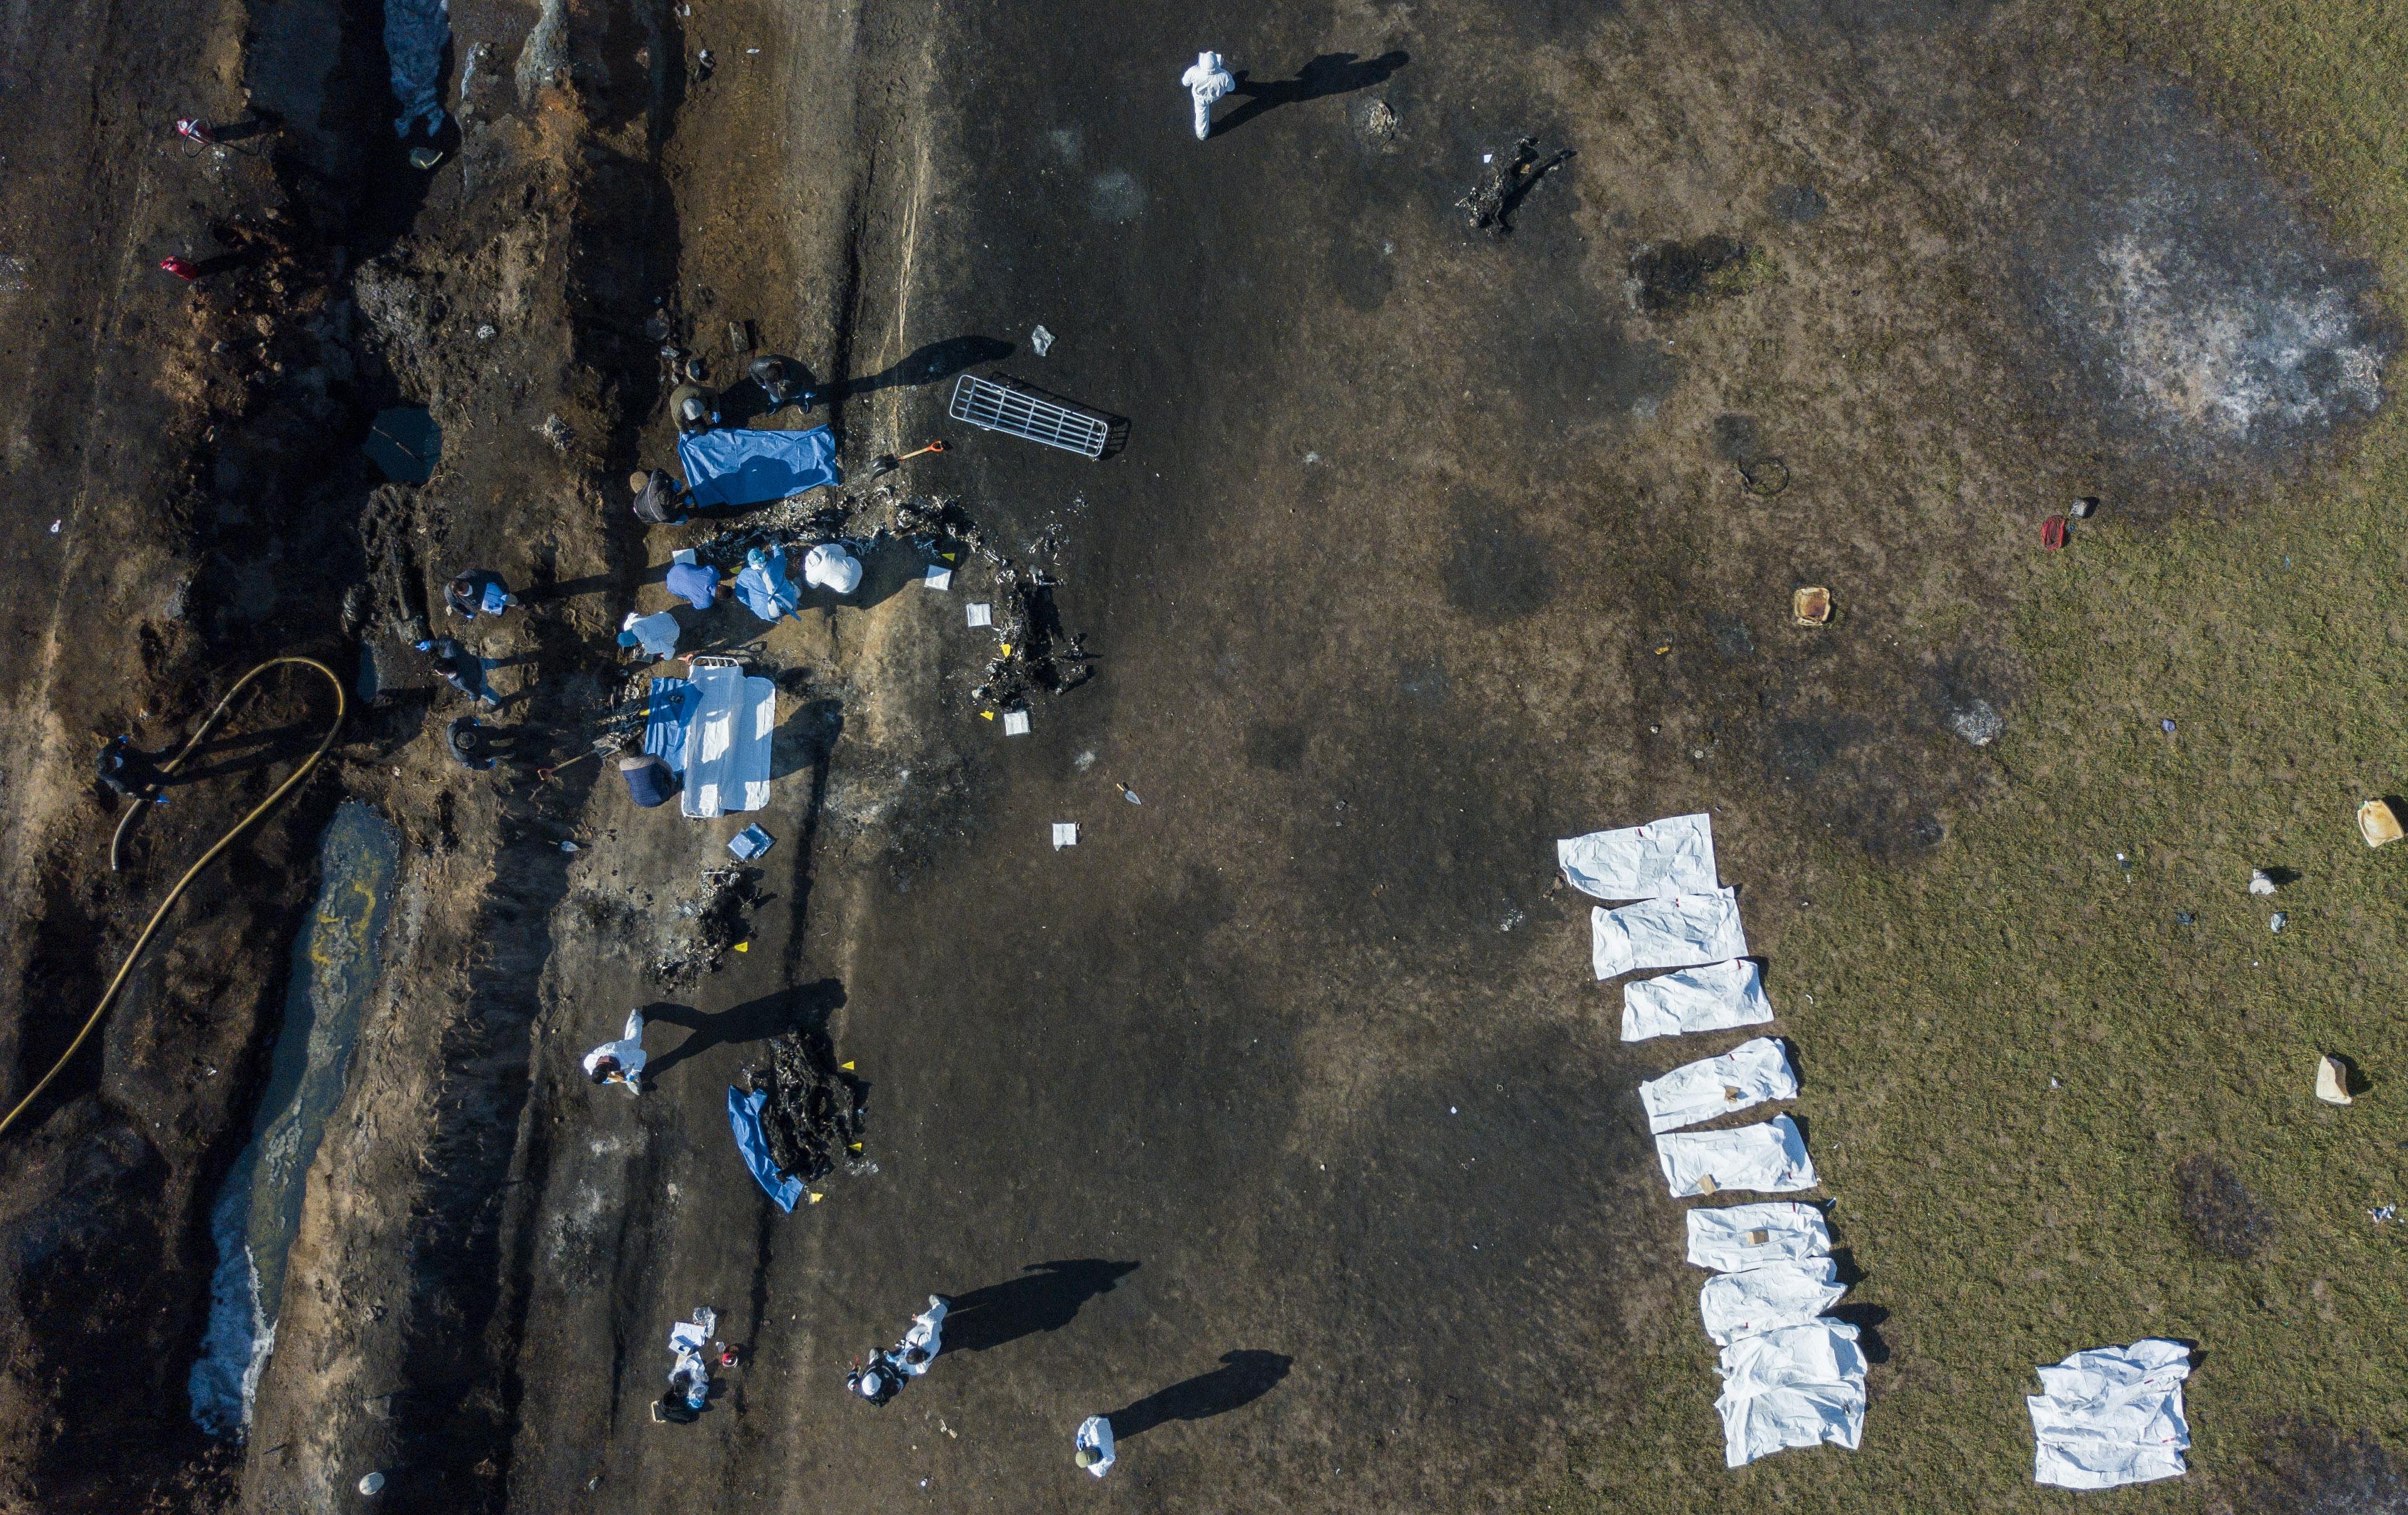 TOPSHOT - EDITORS NOTE: Graphic content / Aerial view of the scene where a massive blaze trigerred by a leaky pipeline took place the night before in Tlahuelilpan, Hidalgo state, Mexico on January 19, 2019. - An explosion and fire has killed at least 66 people who were collecting fuel gushing from a leaking pipeline in central Mexico, the Hidalgo state governor said on Saturday. (Photo by ALFREDO ESTRELLA / AFP) (Photo credit should read ALFREDO ESTRELLA/AFP/Getty Images)